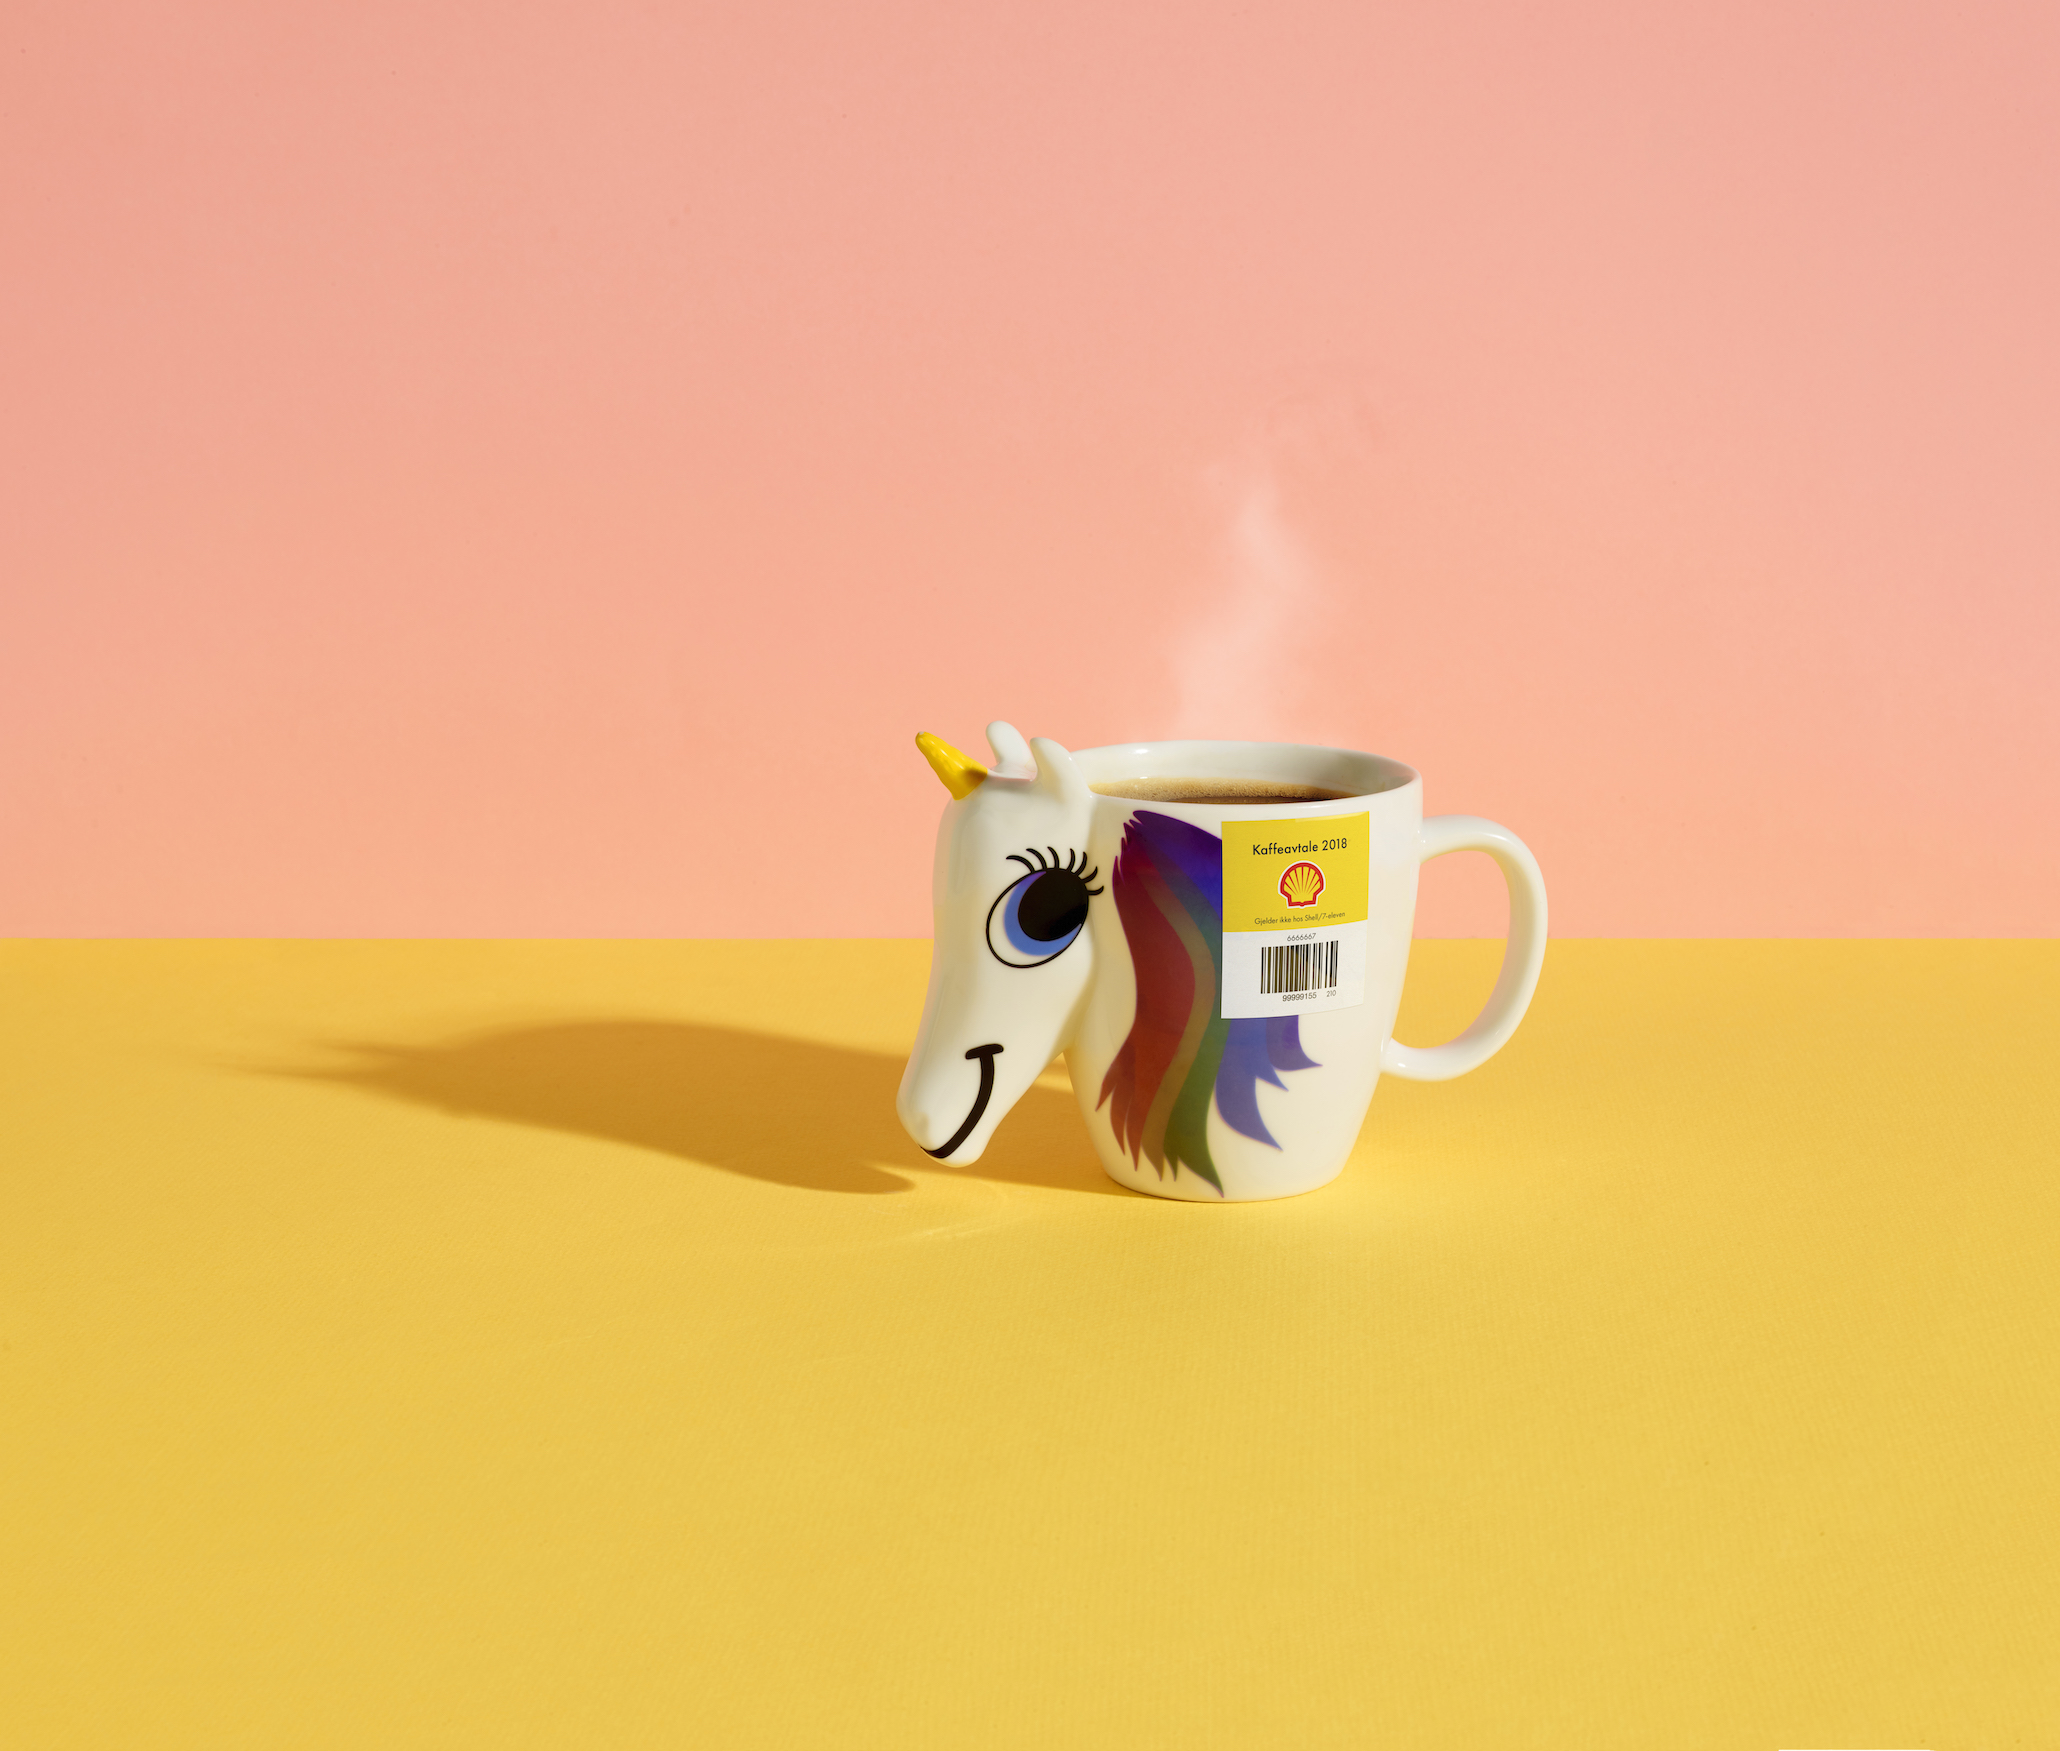 "Funny and striking images of coffee cups together with the slogan ""Bring and use the cup you want!"" are featured in the app's marketing material"